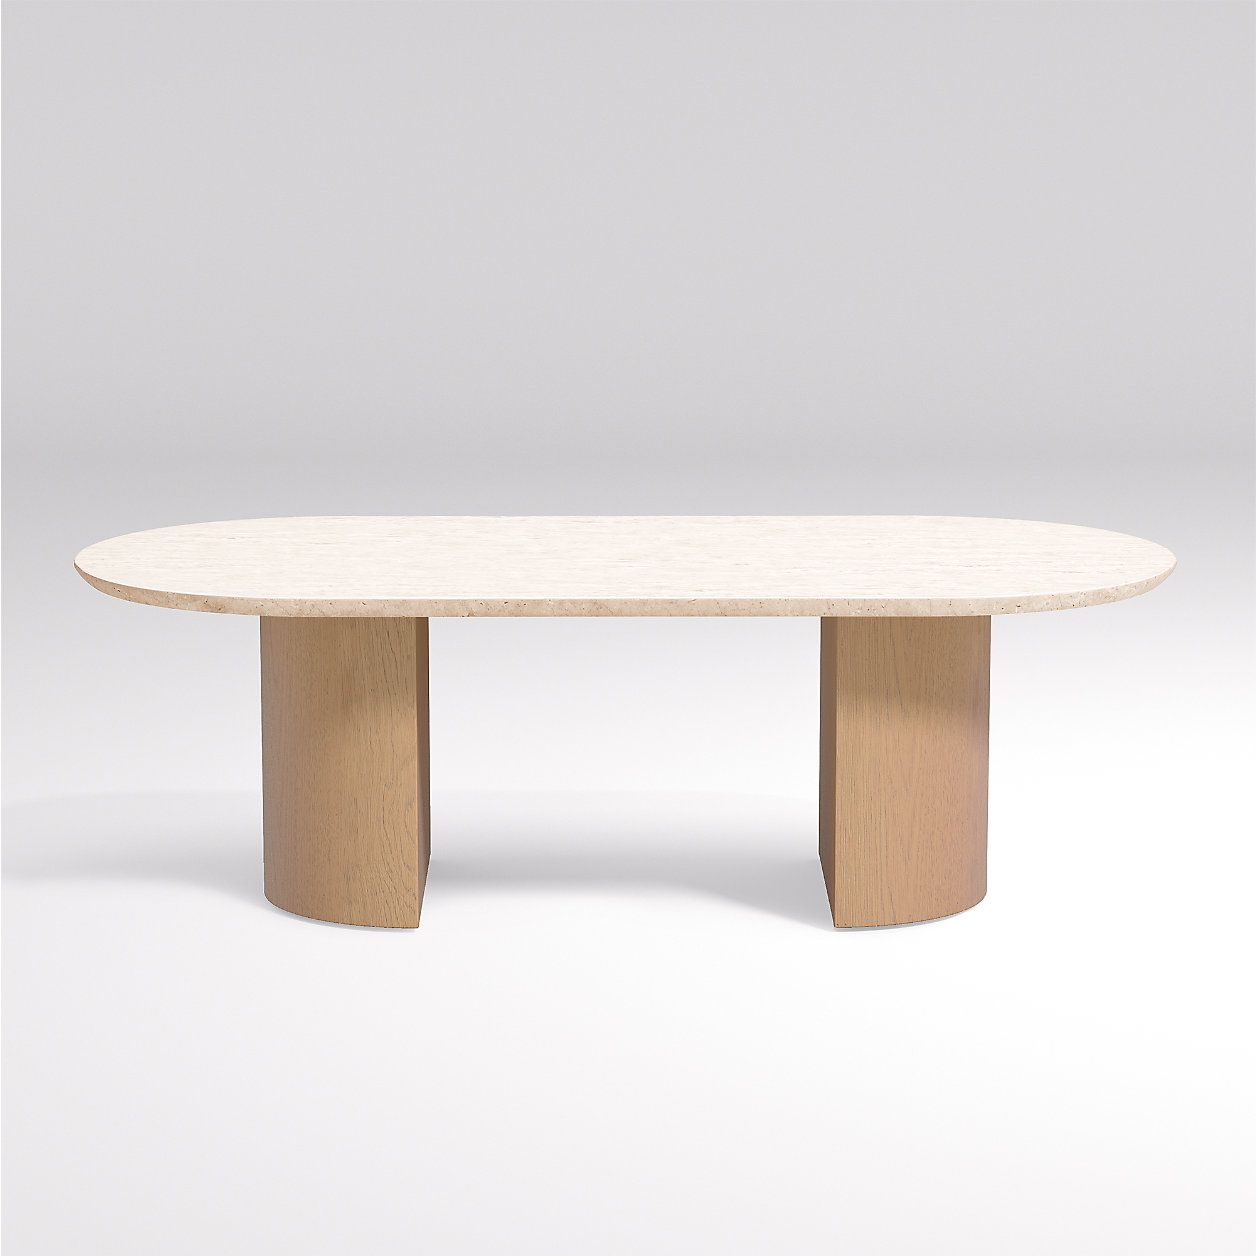 Pin On Sykes Living Dining Remodel #oval #living #room #tables